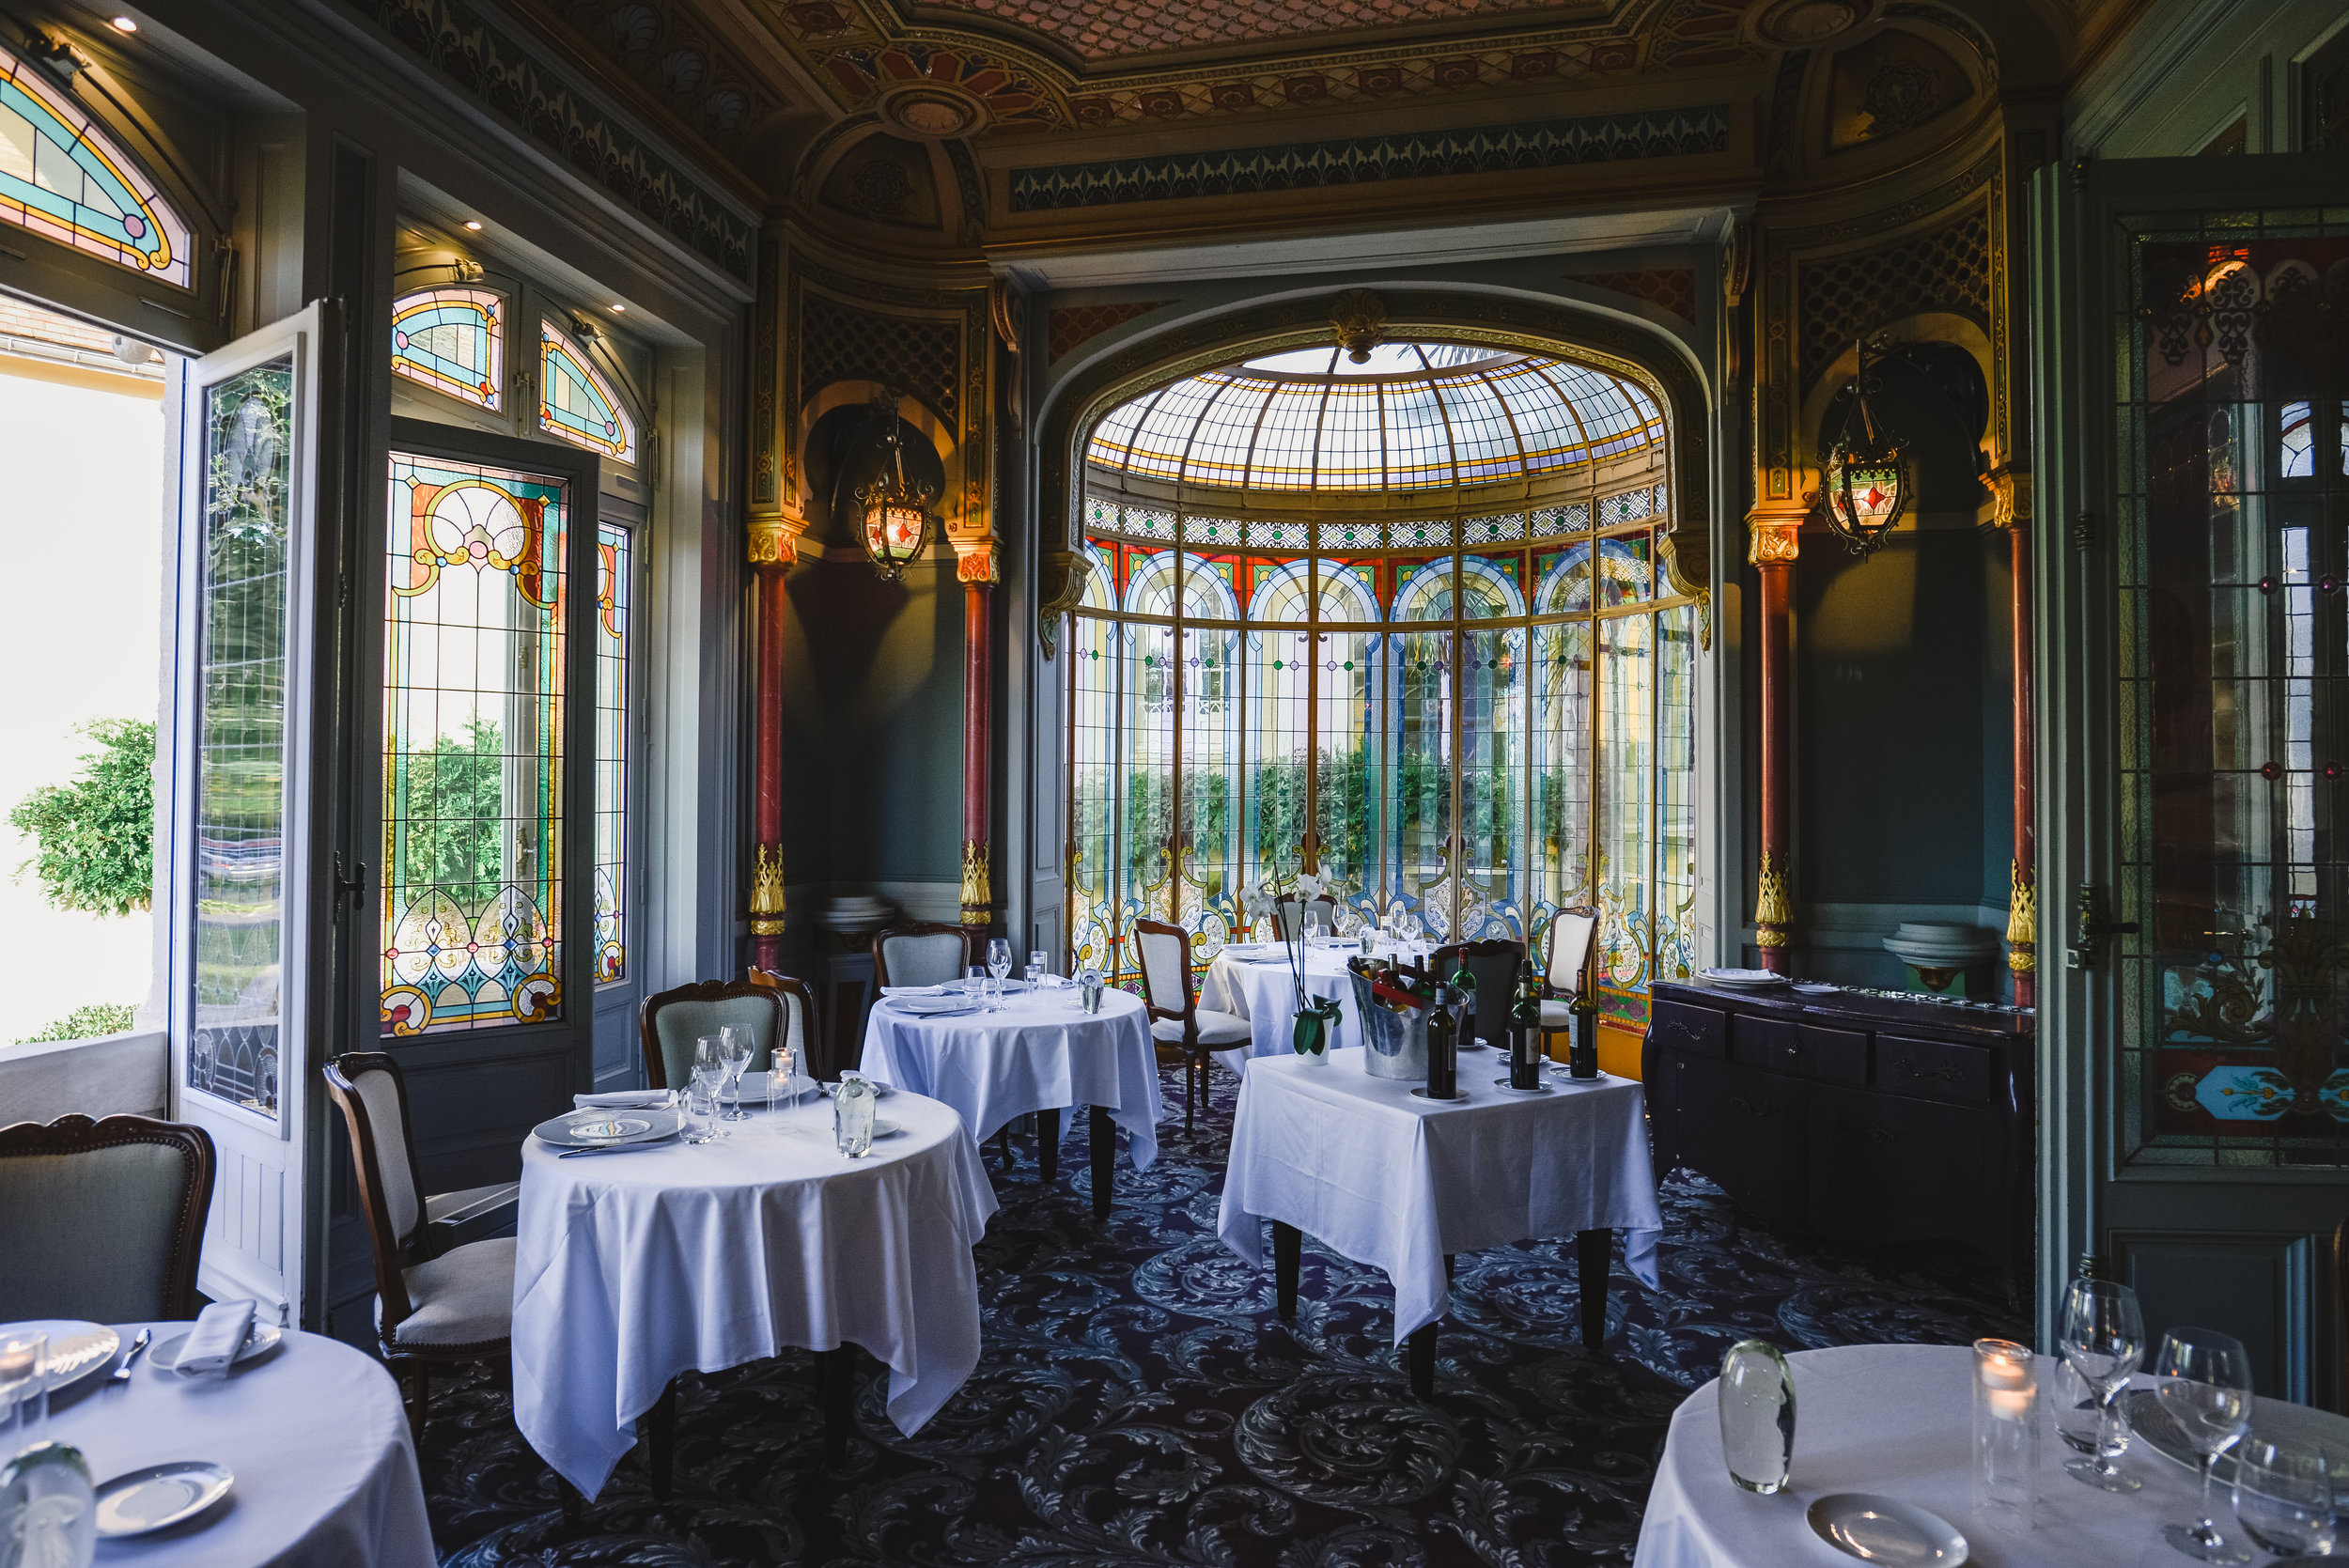 The Grand Barrail dining room